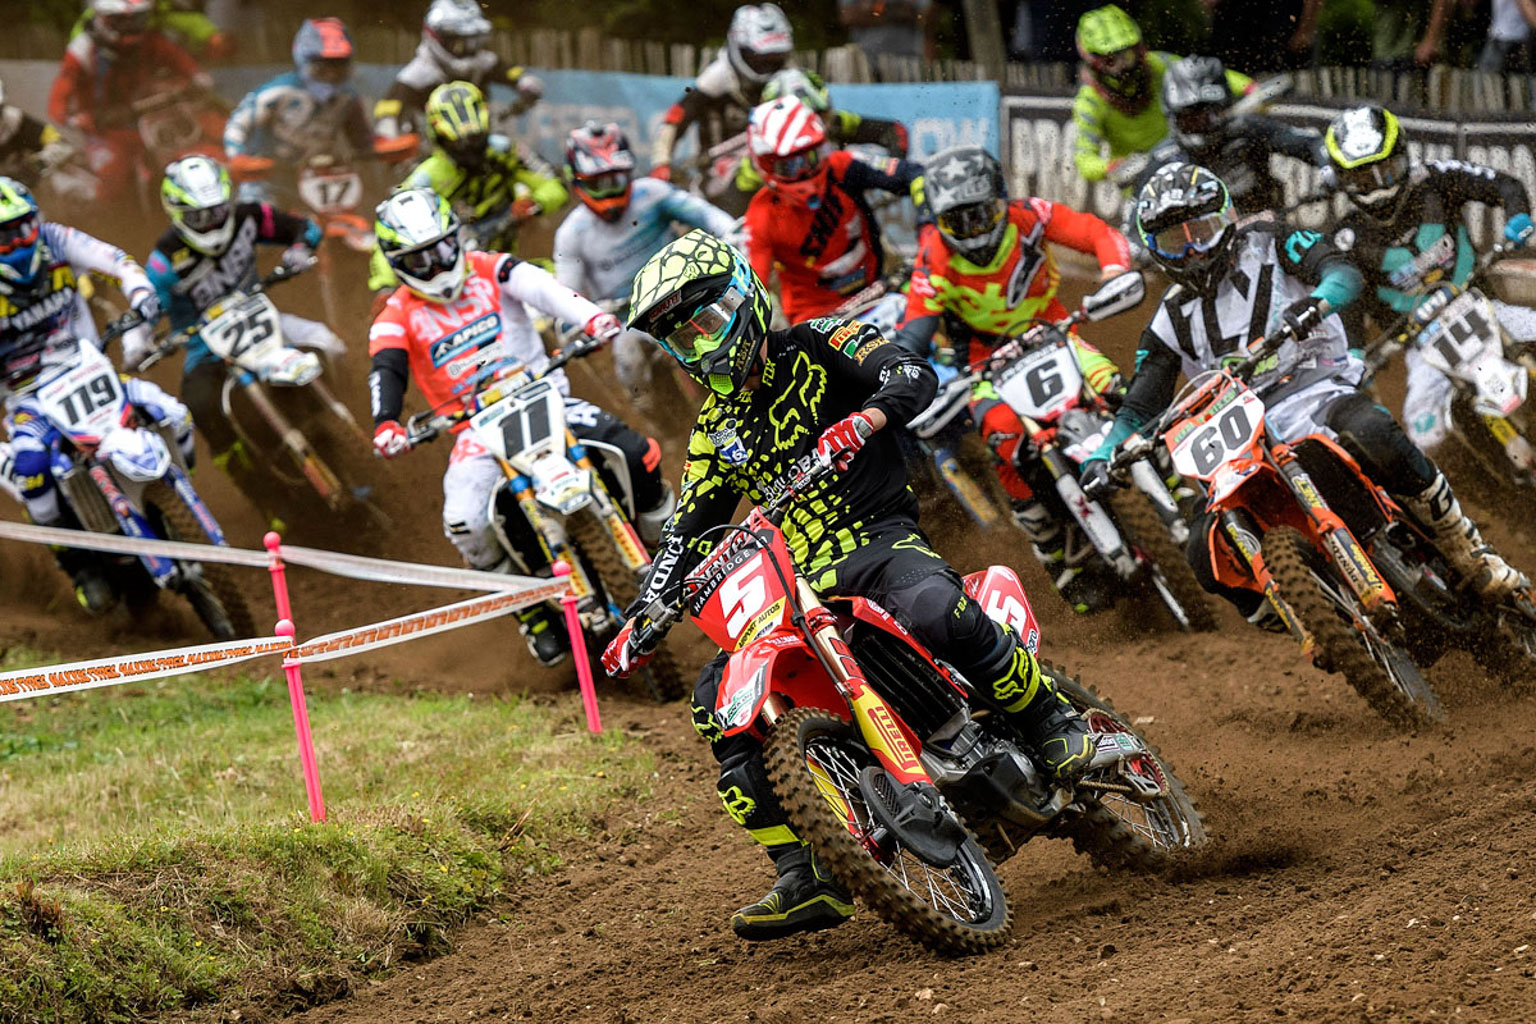 Irwin takes the holeshot